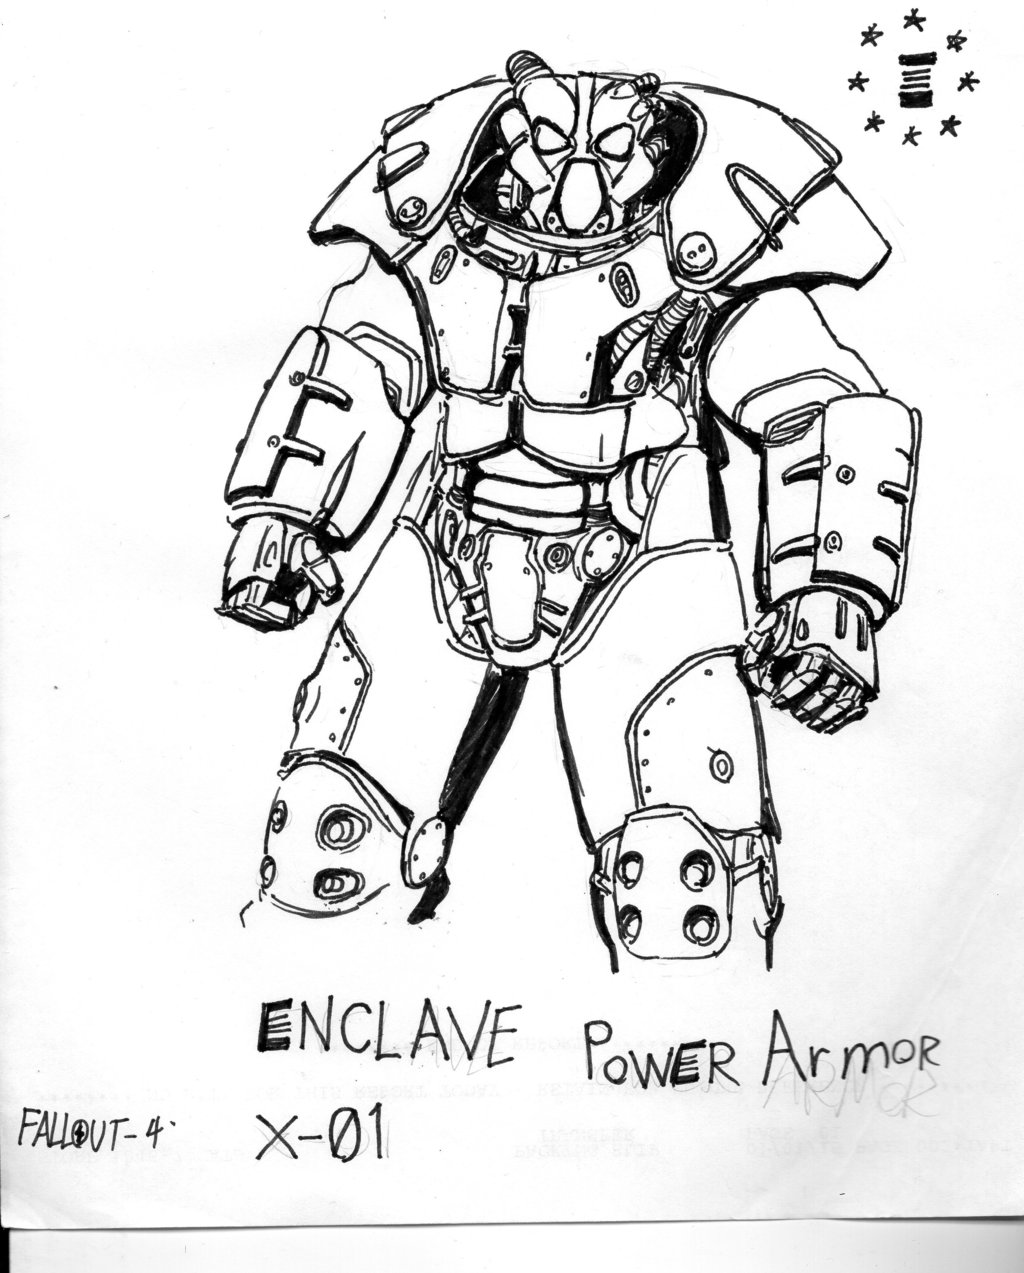 1024x1273 Fallout 4 Enclave Power Armor Or X01 By Therenegadesgt